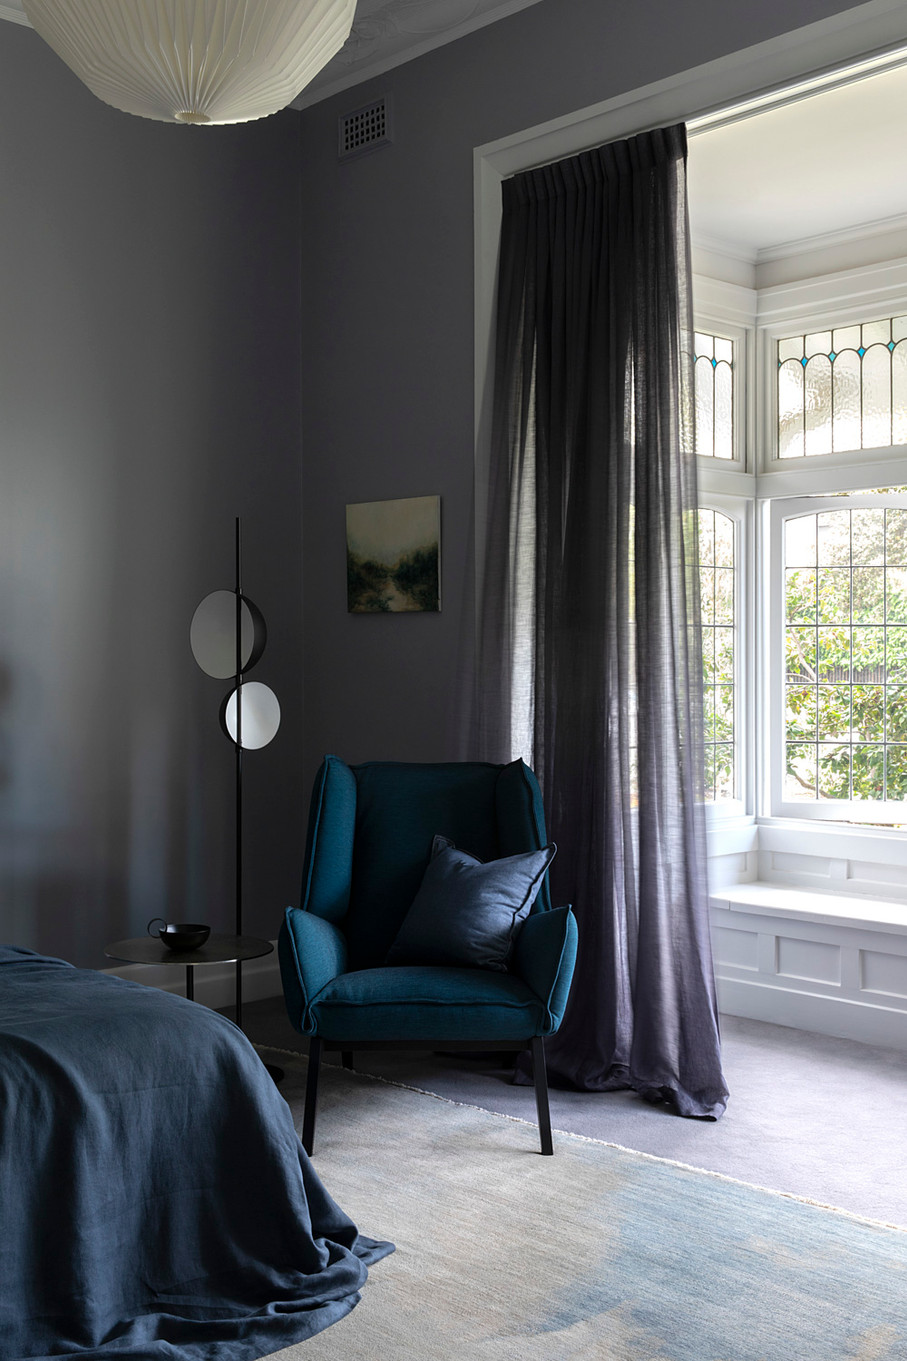 Luxurious materials in the Main Bedroom